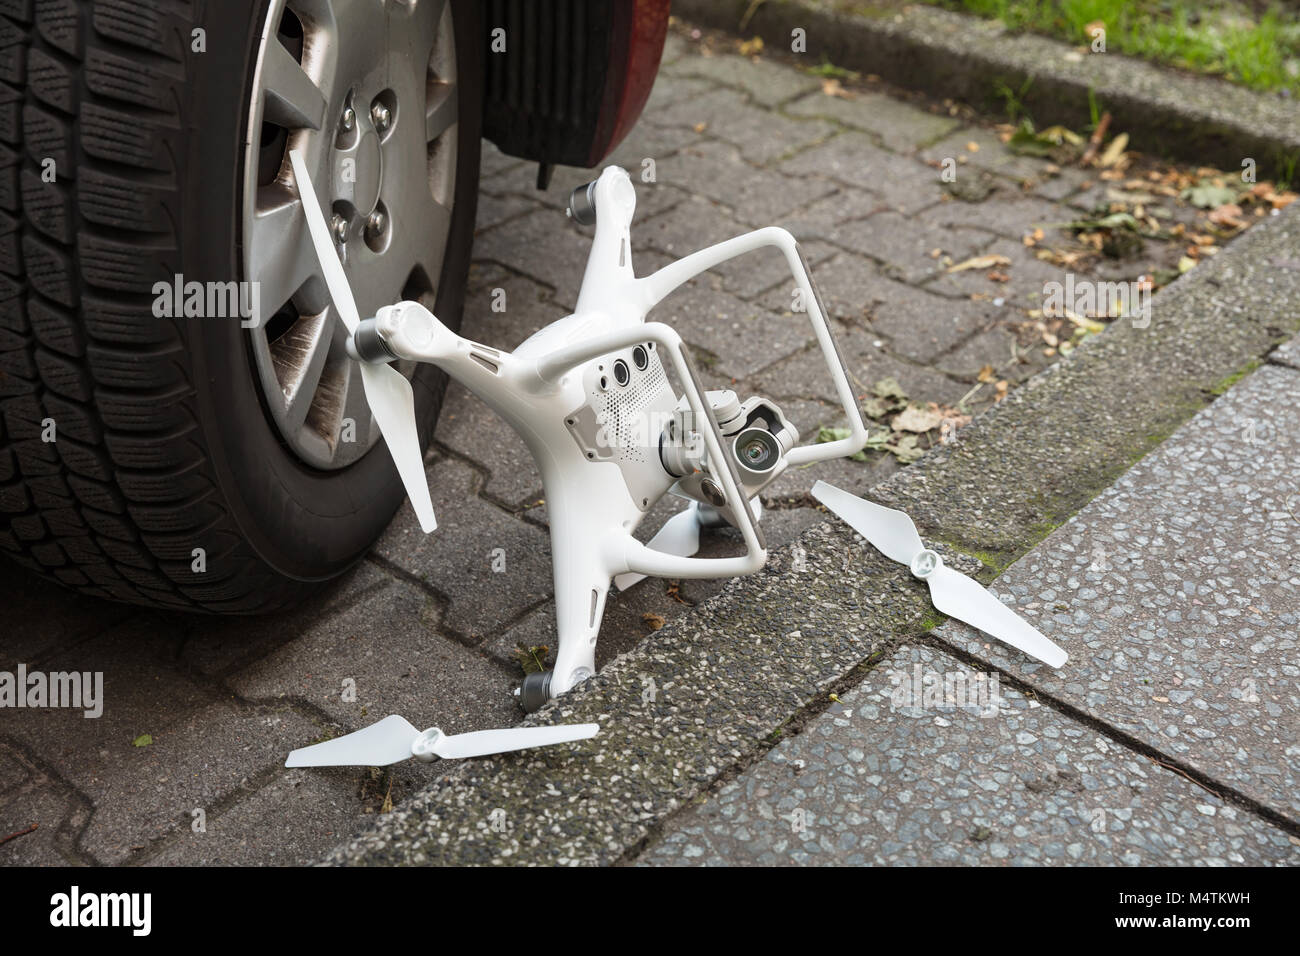 High angle view of broken drone by car wheel on footpath - Stock Image